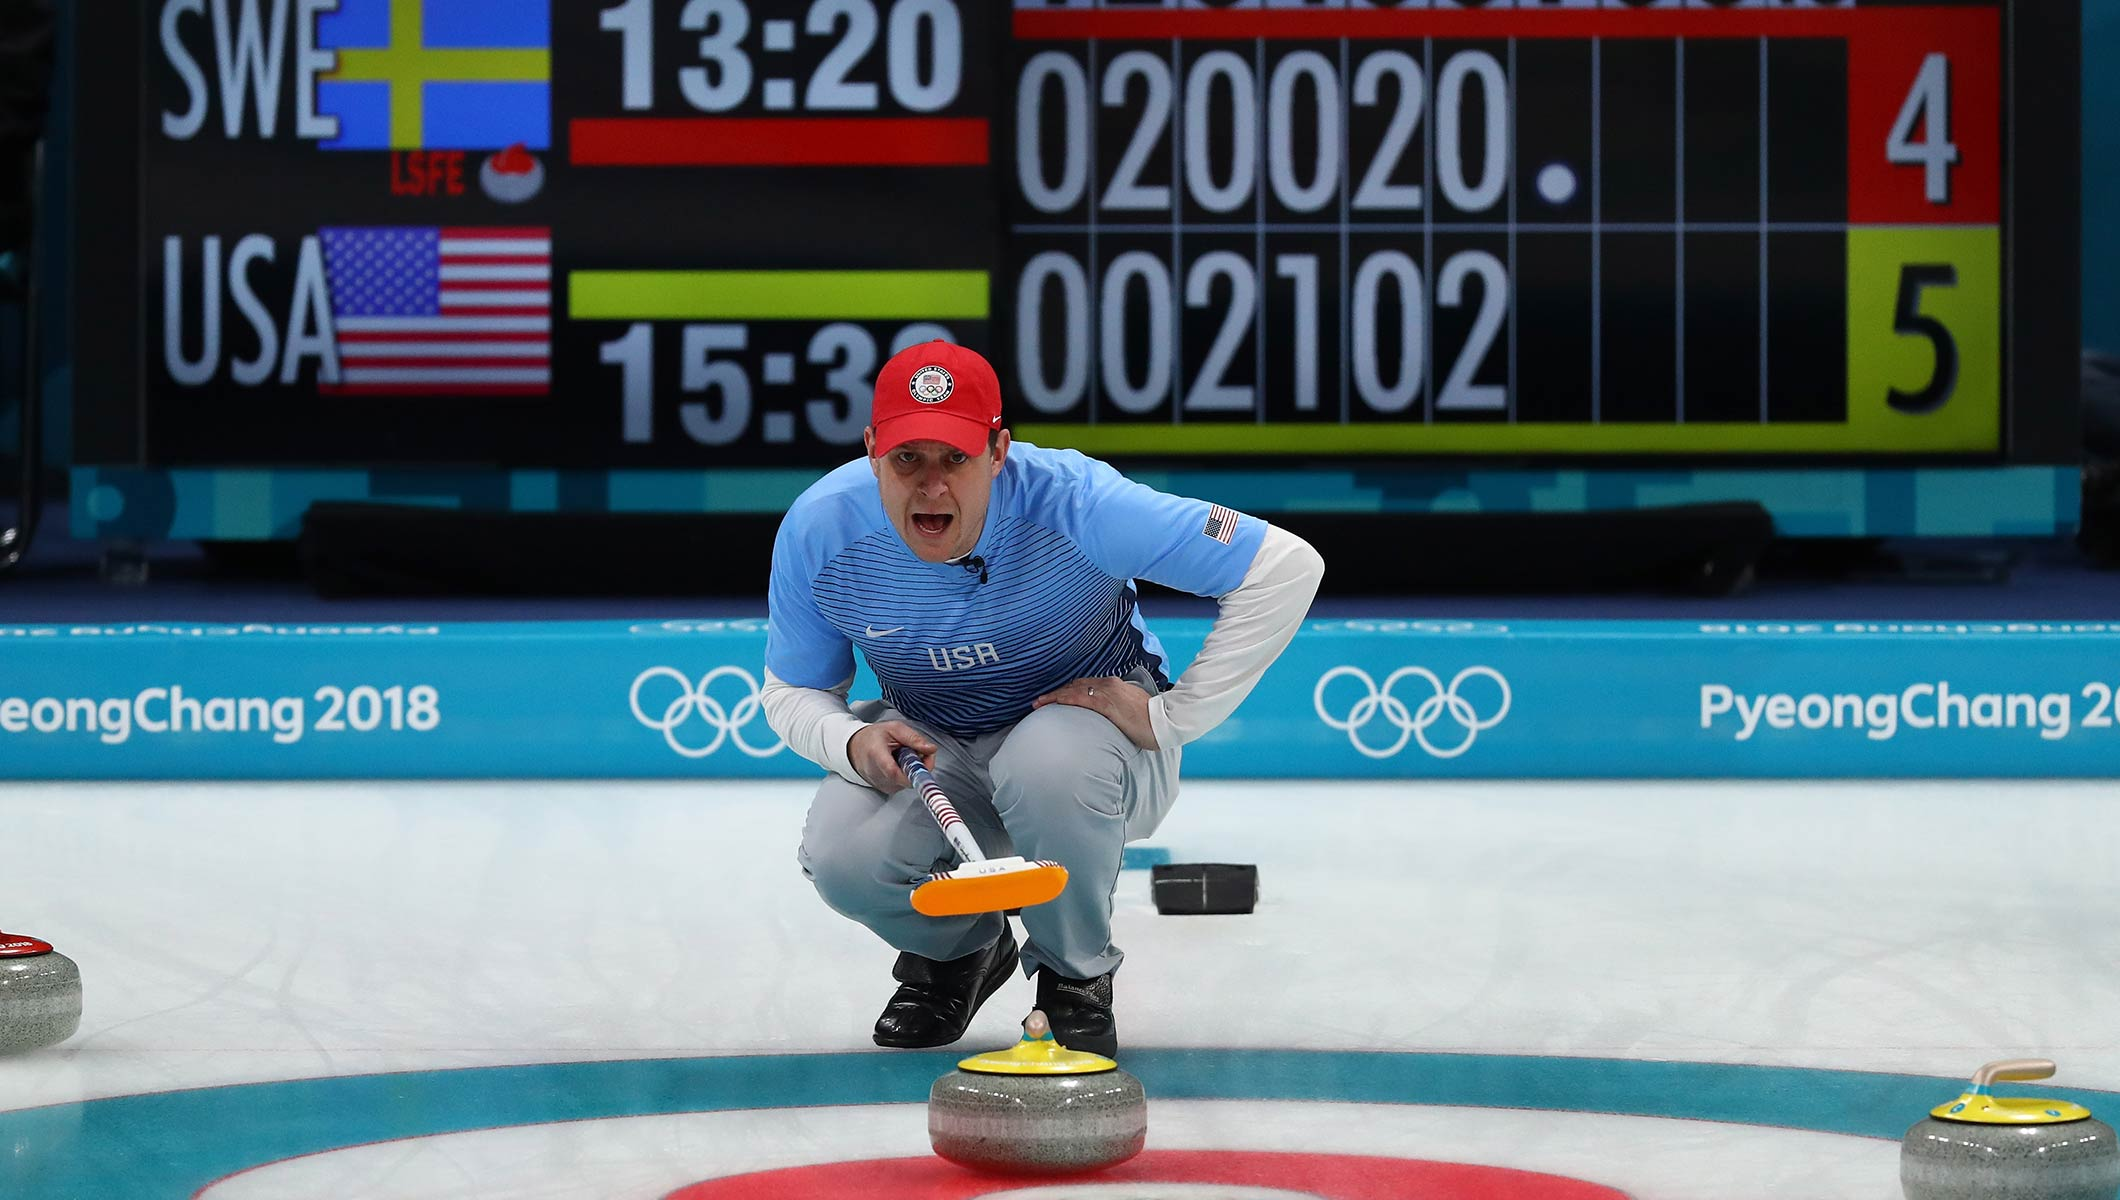 Curling At The 2020 Olympic Winter Games.Curling